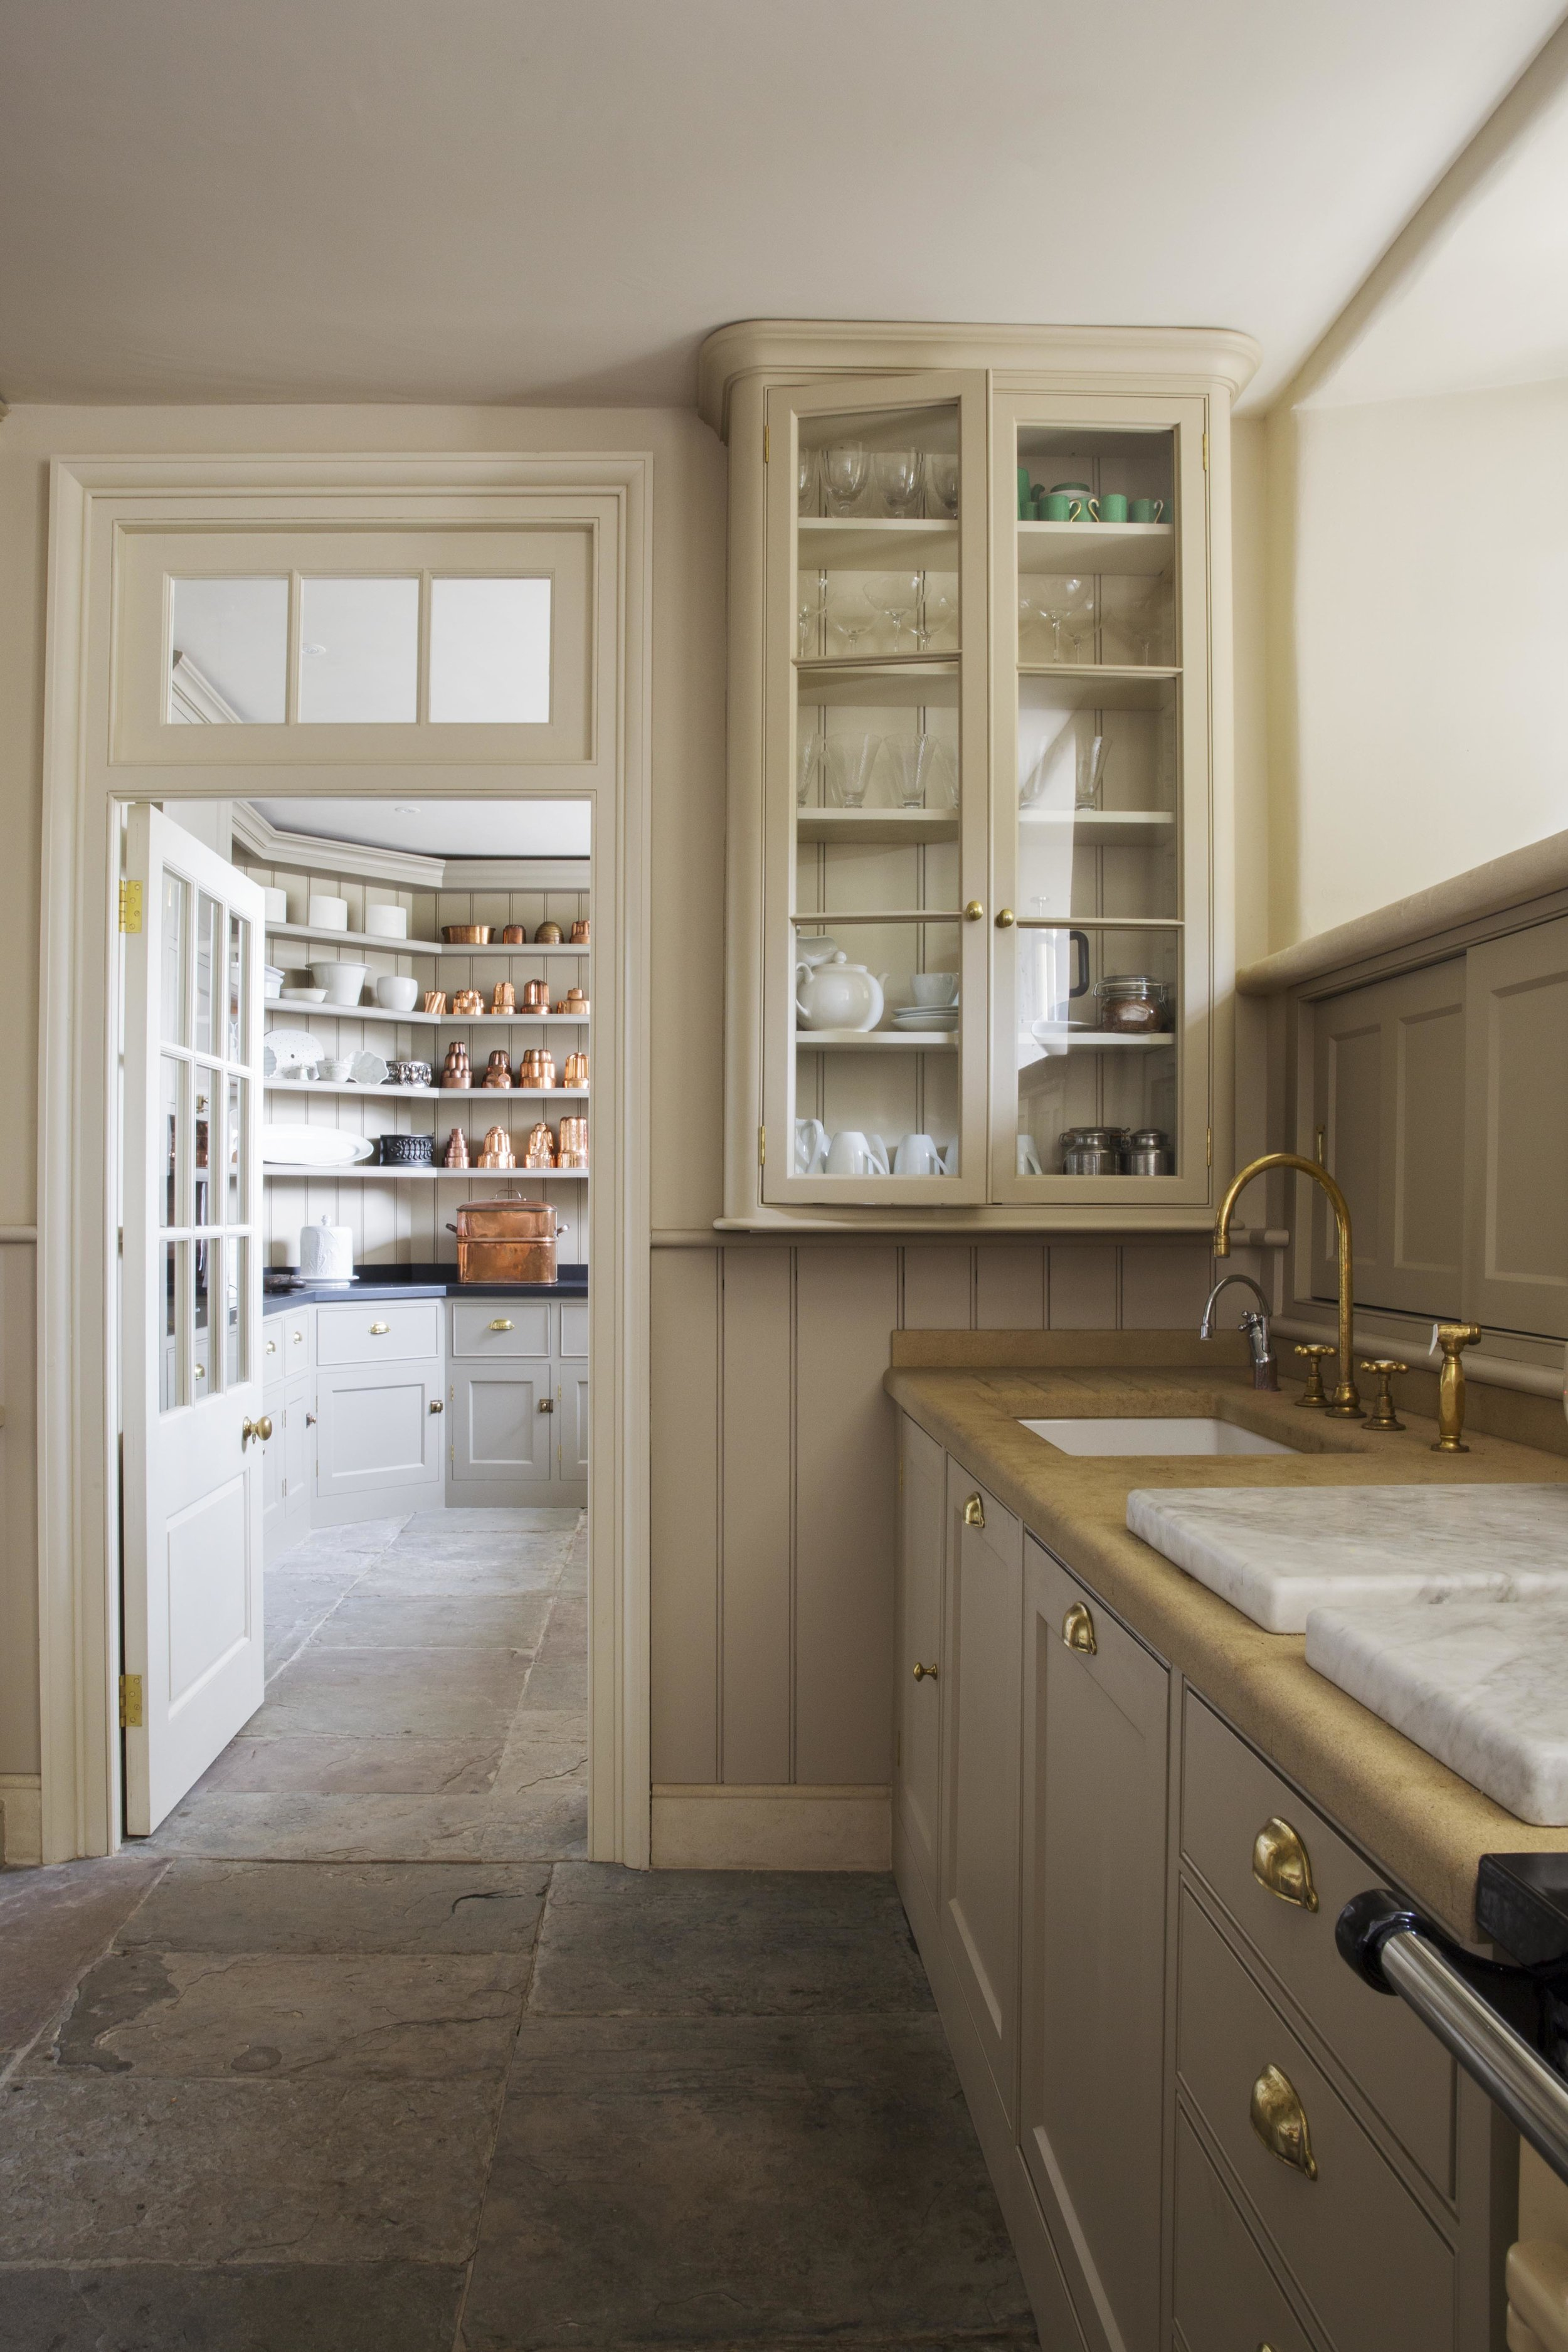 Tall, elegant glazed cupboards reach up to the ceiling and frame the doorway.